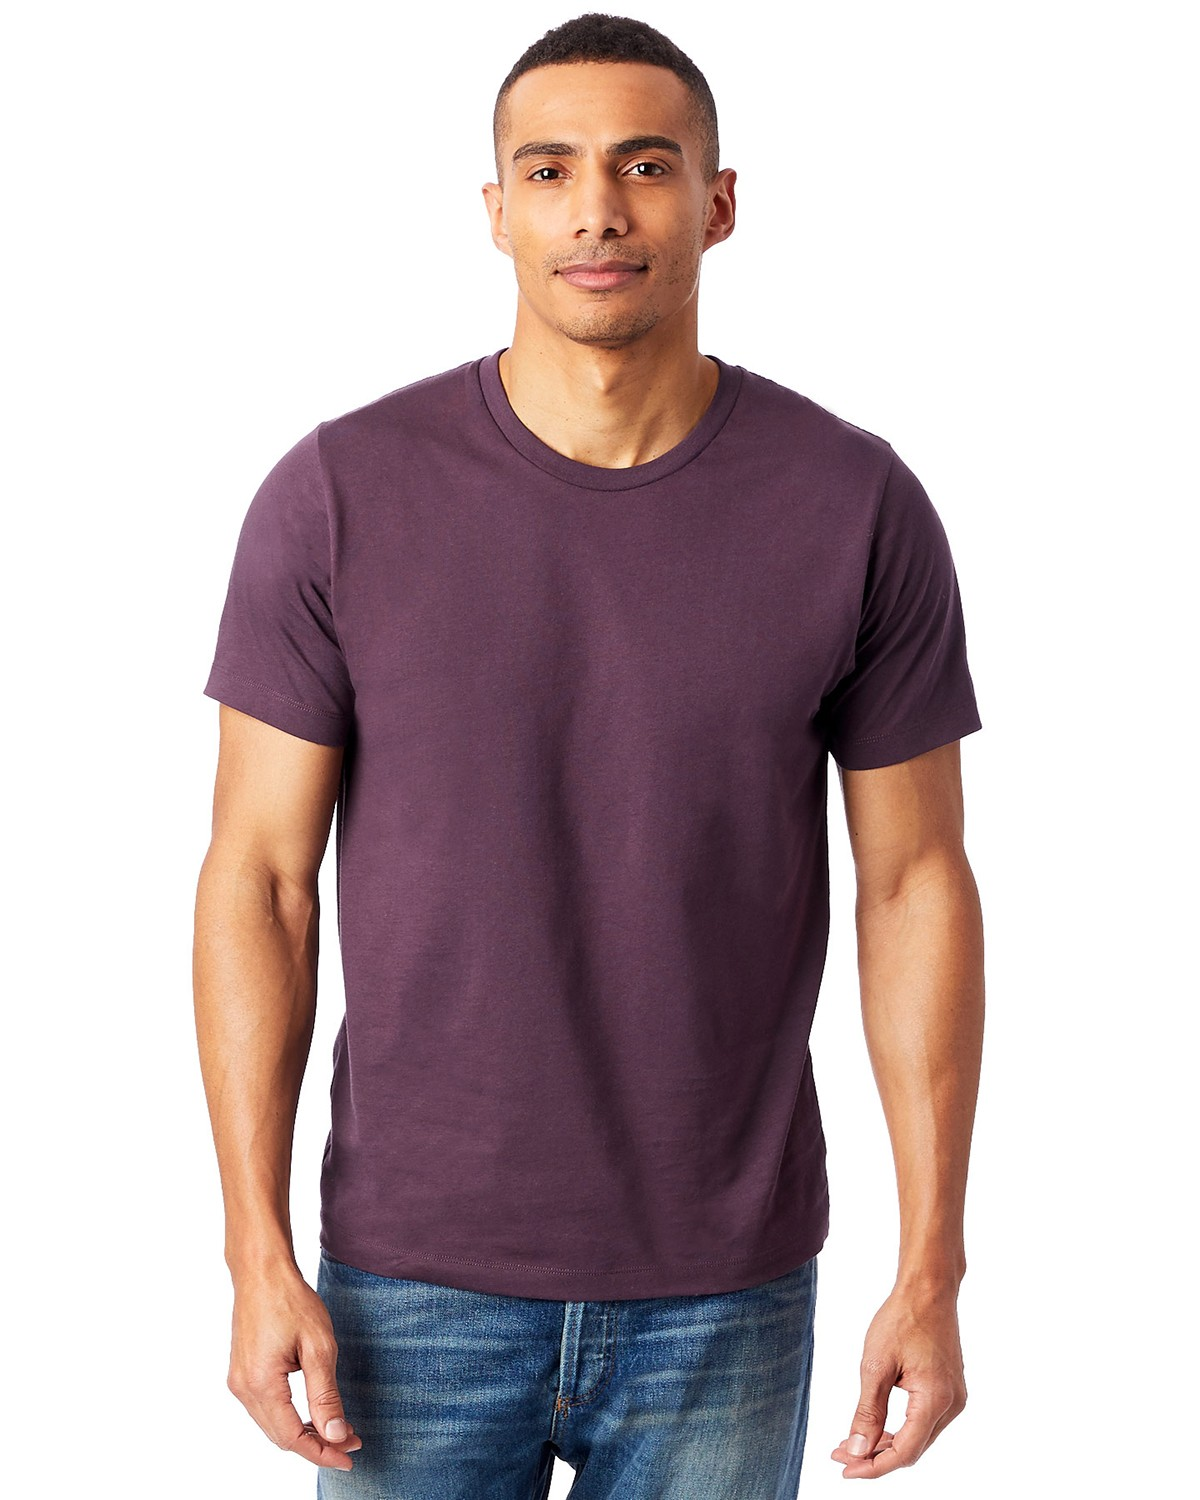 AA1070 Alternative DARK PURPLE